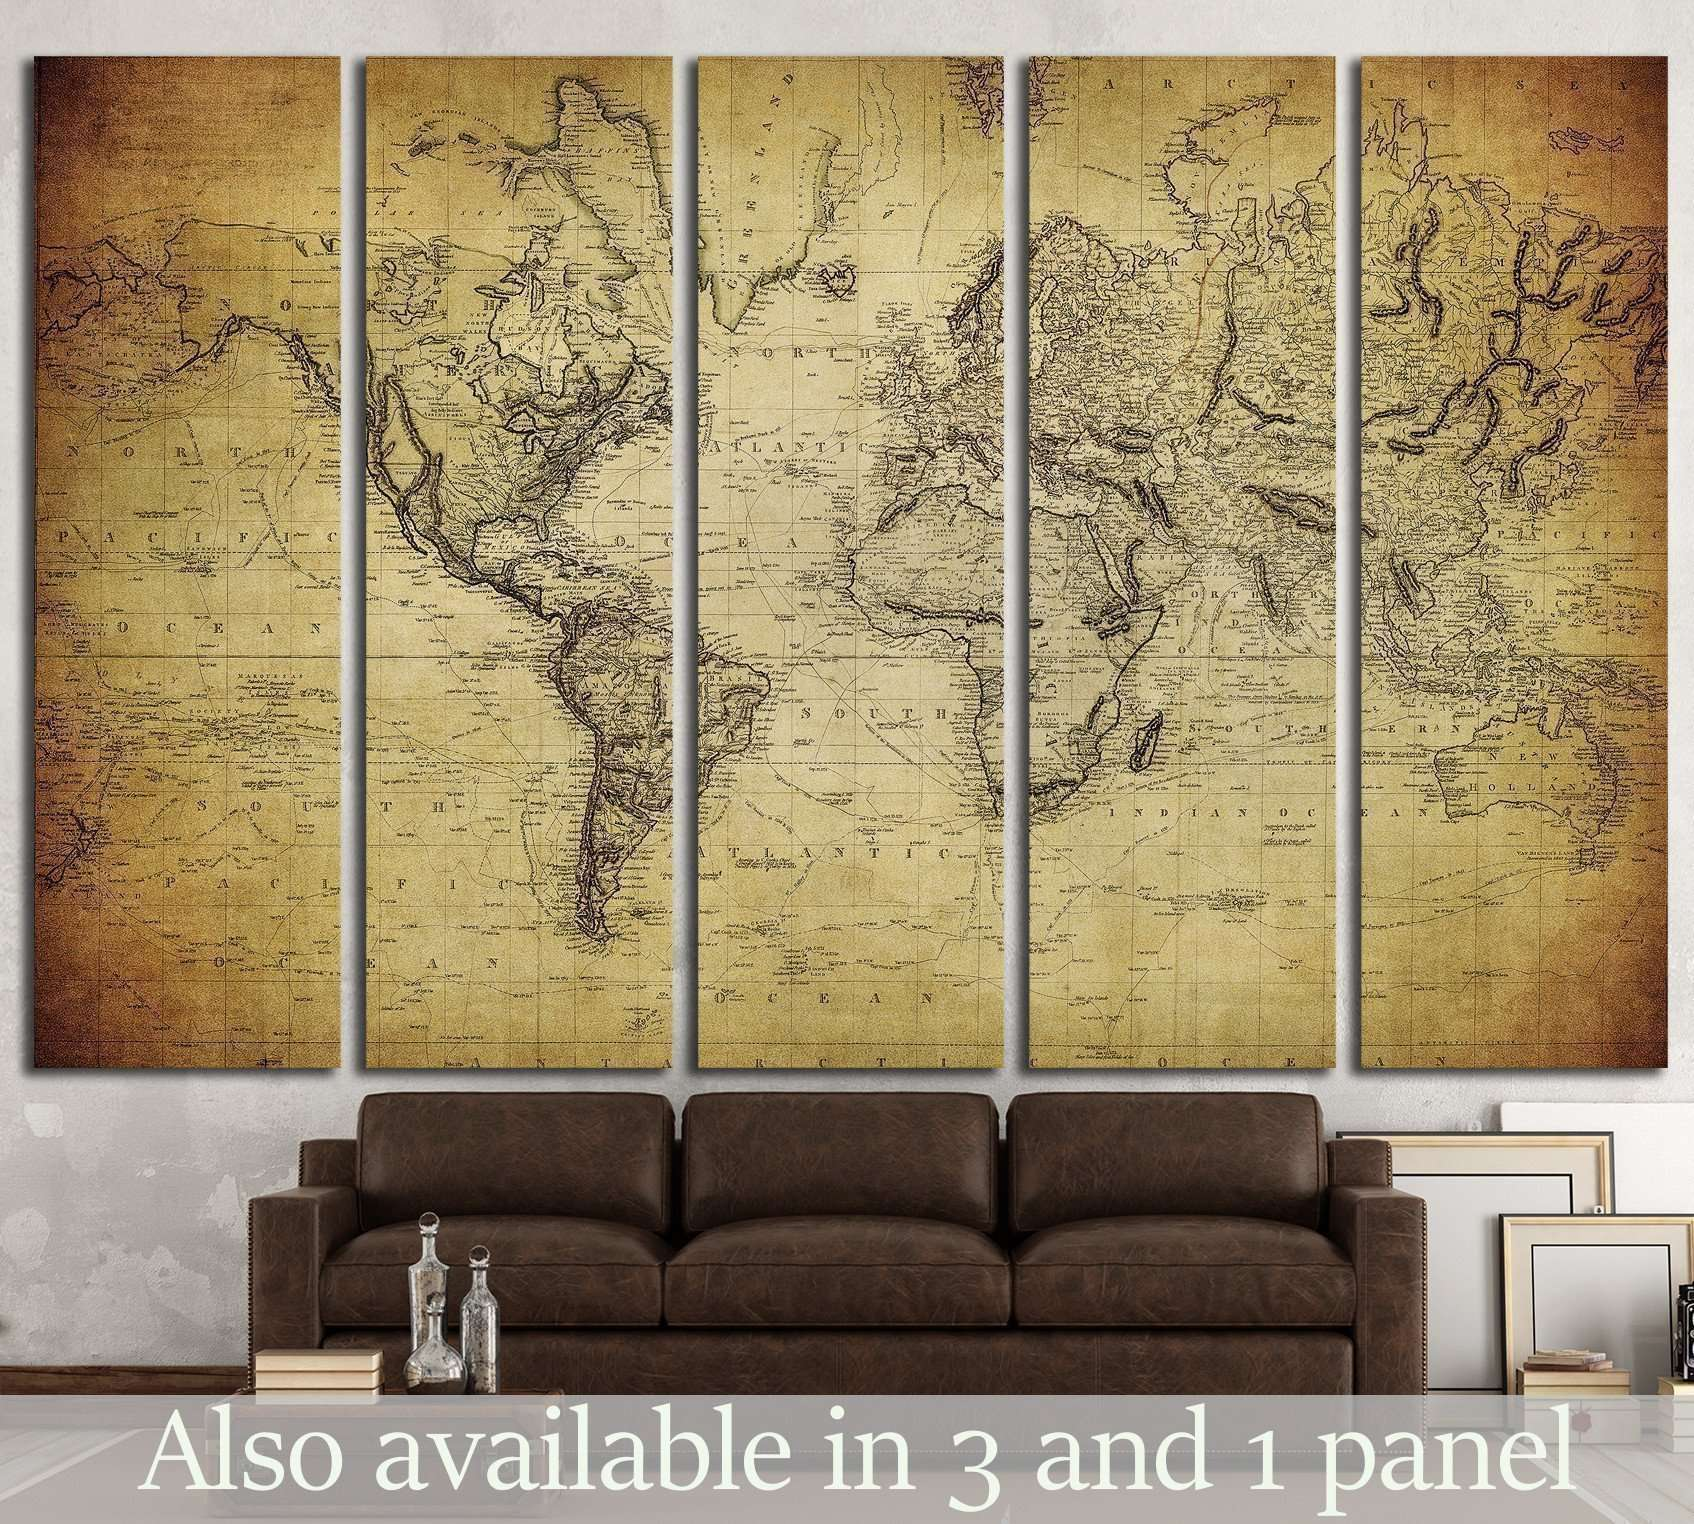 World & Country Maps at Zellart Canvas Arts